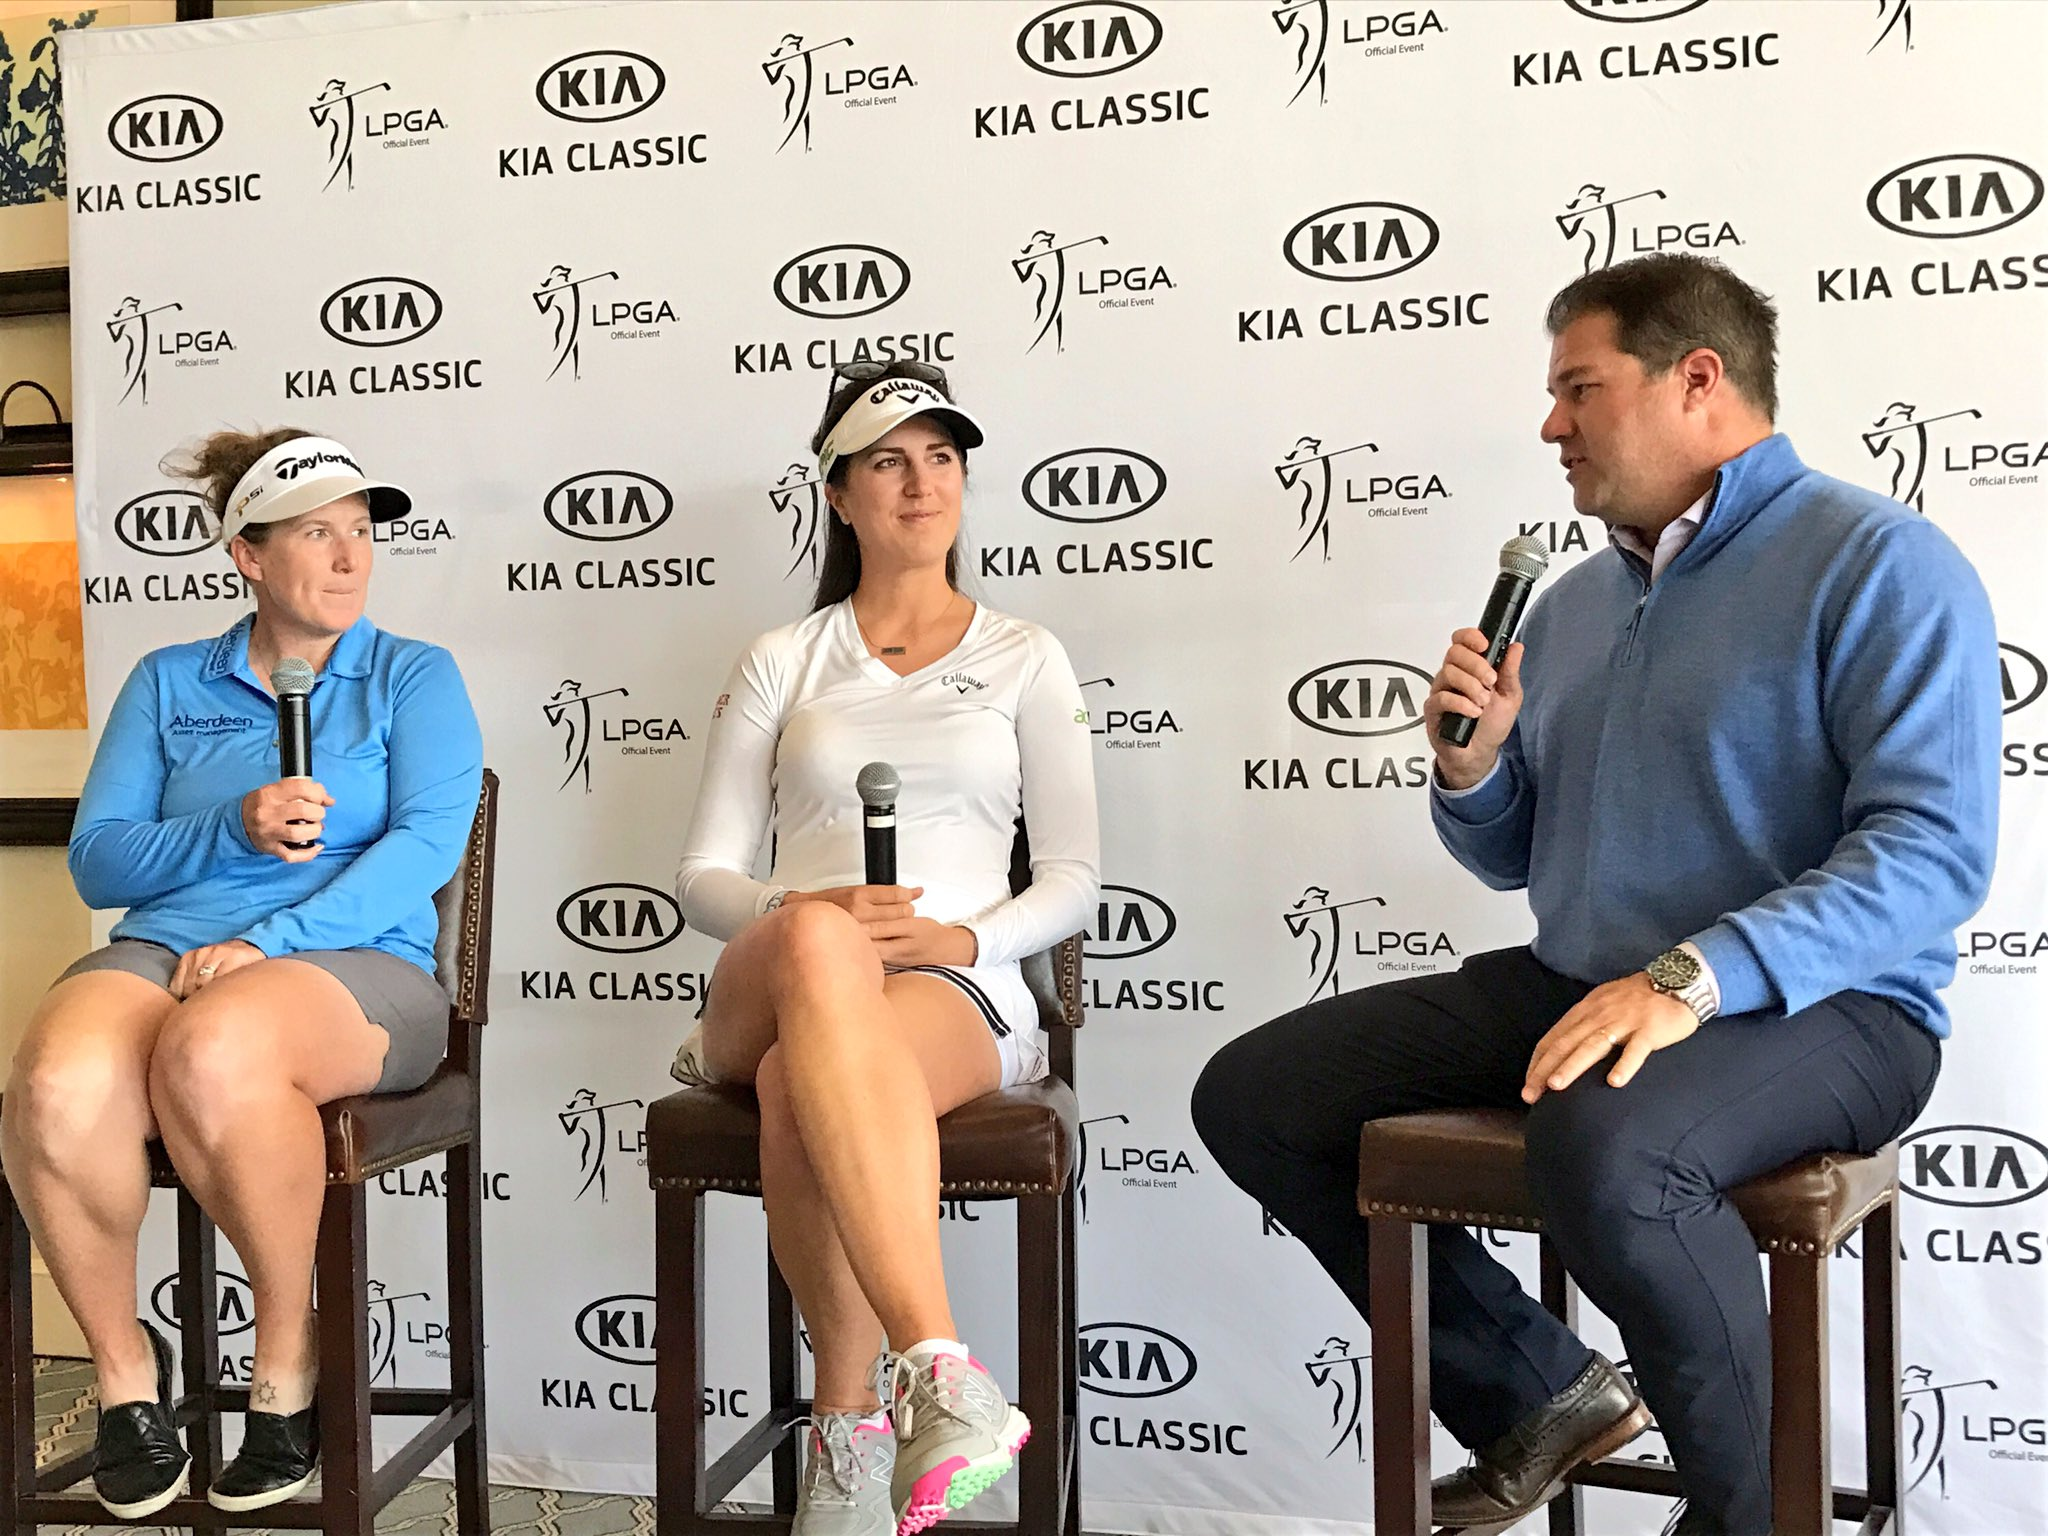 f5dec5bd The SCGA recently caught up with Kia Classic past champ Sandra Gal and San  Diego native Beth Allen at Media Day. Two of the LPGA's most intriguing  players ...